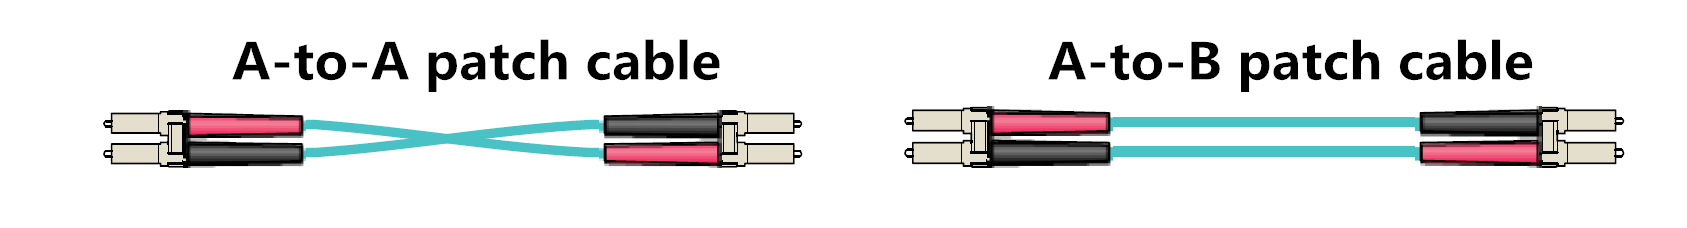 two types of duplex-patch-cable